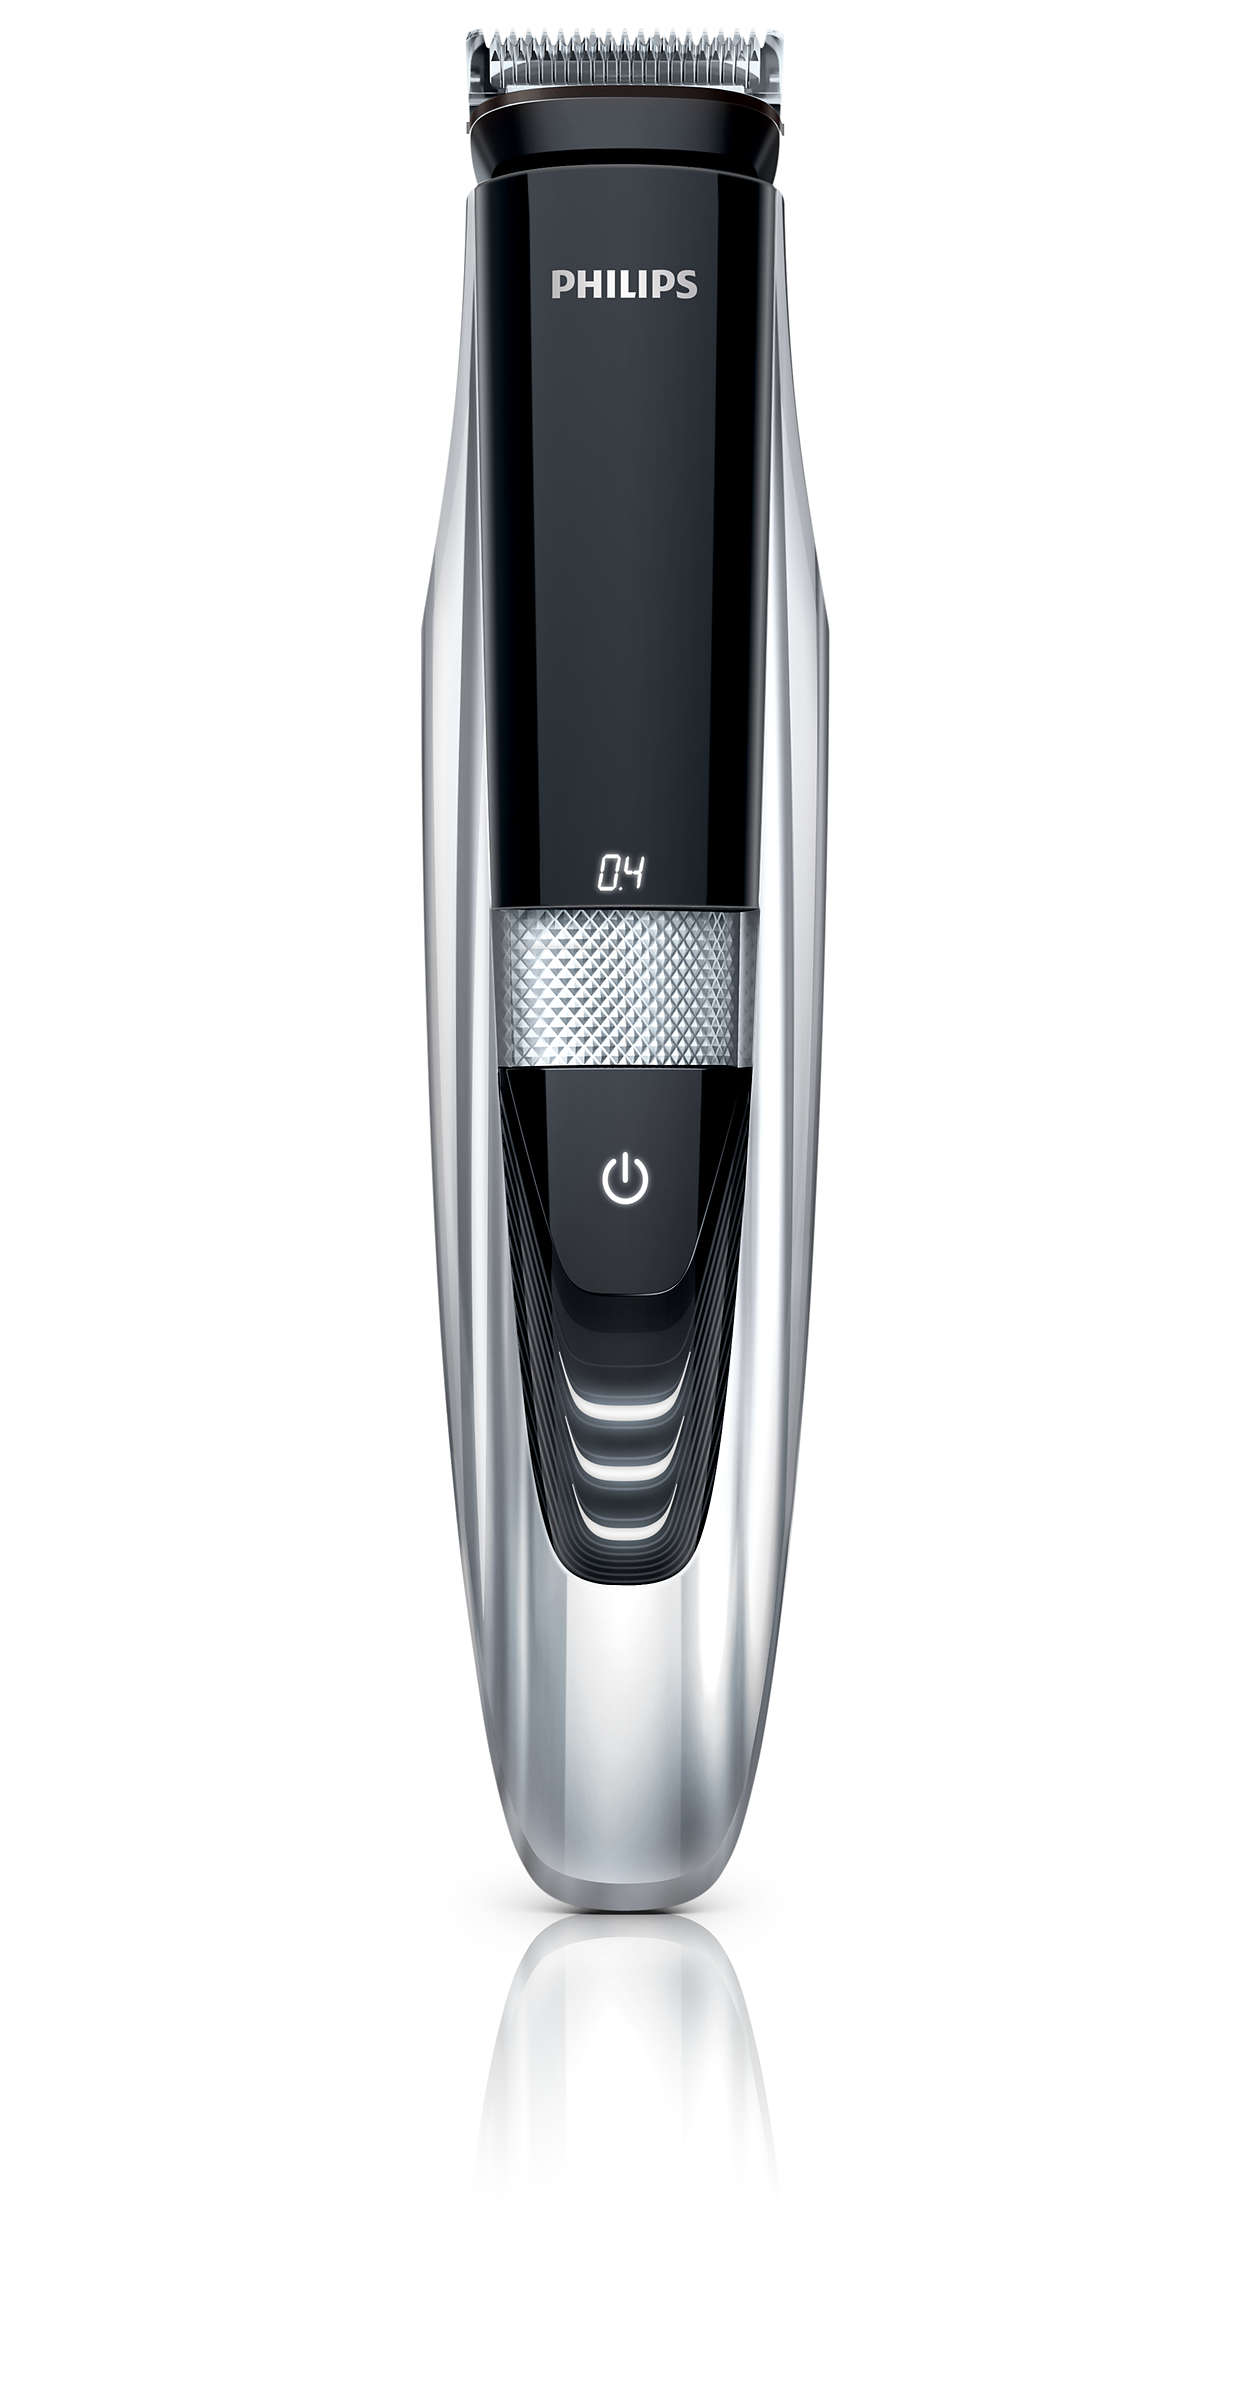 beardtrimmer series 9000 waterproof beard trimmer bt9295 32 philips. Black Bedroom Furniture Sets. Home Design Ideas